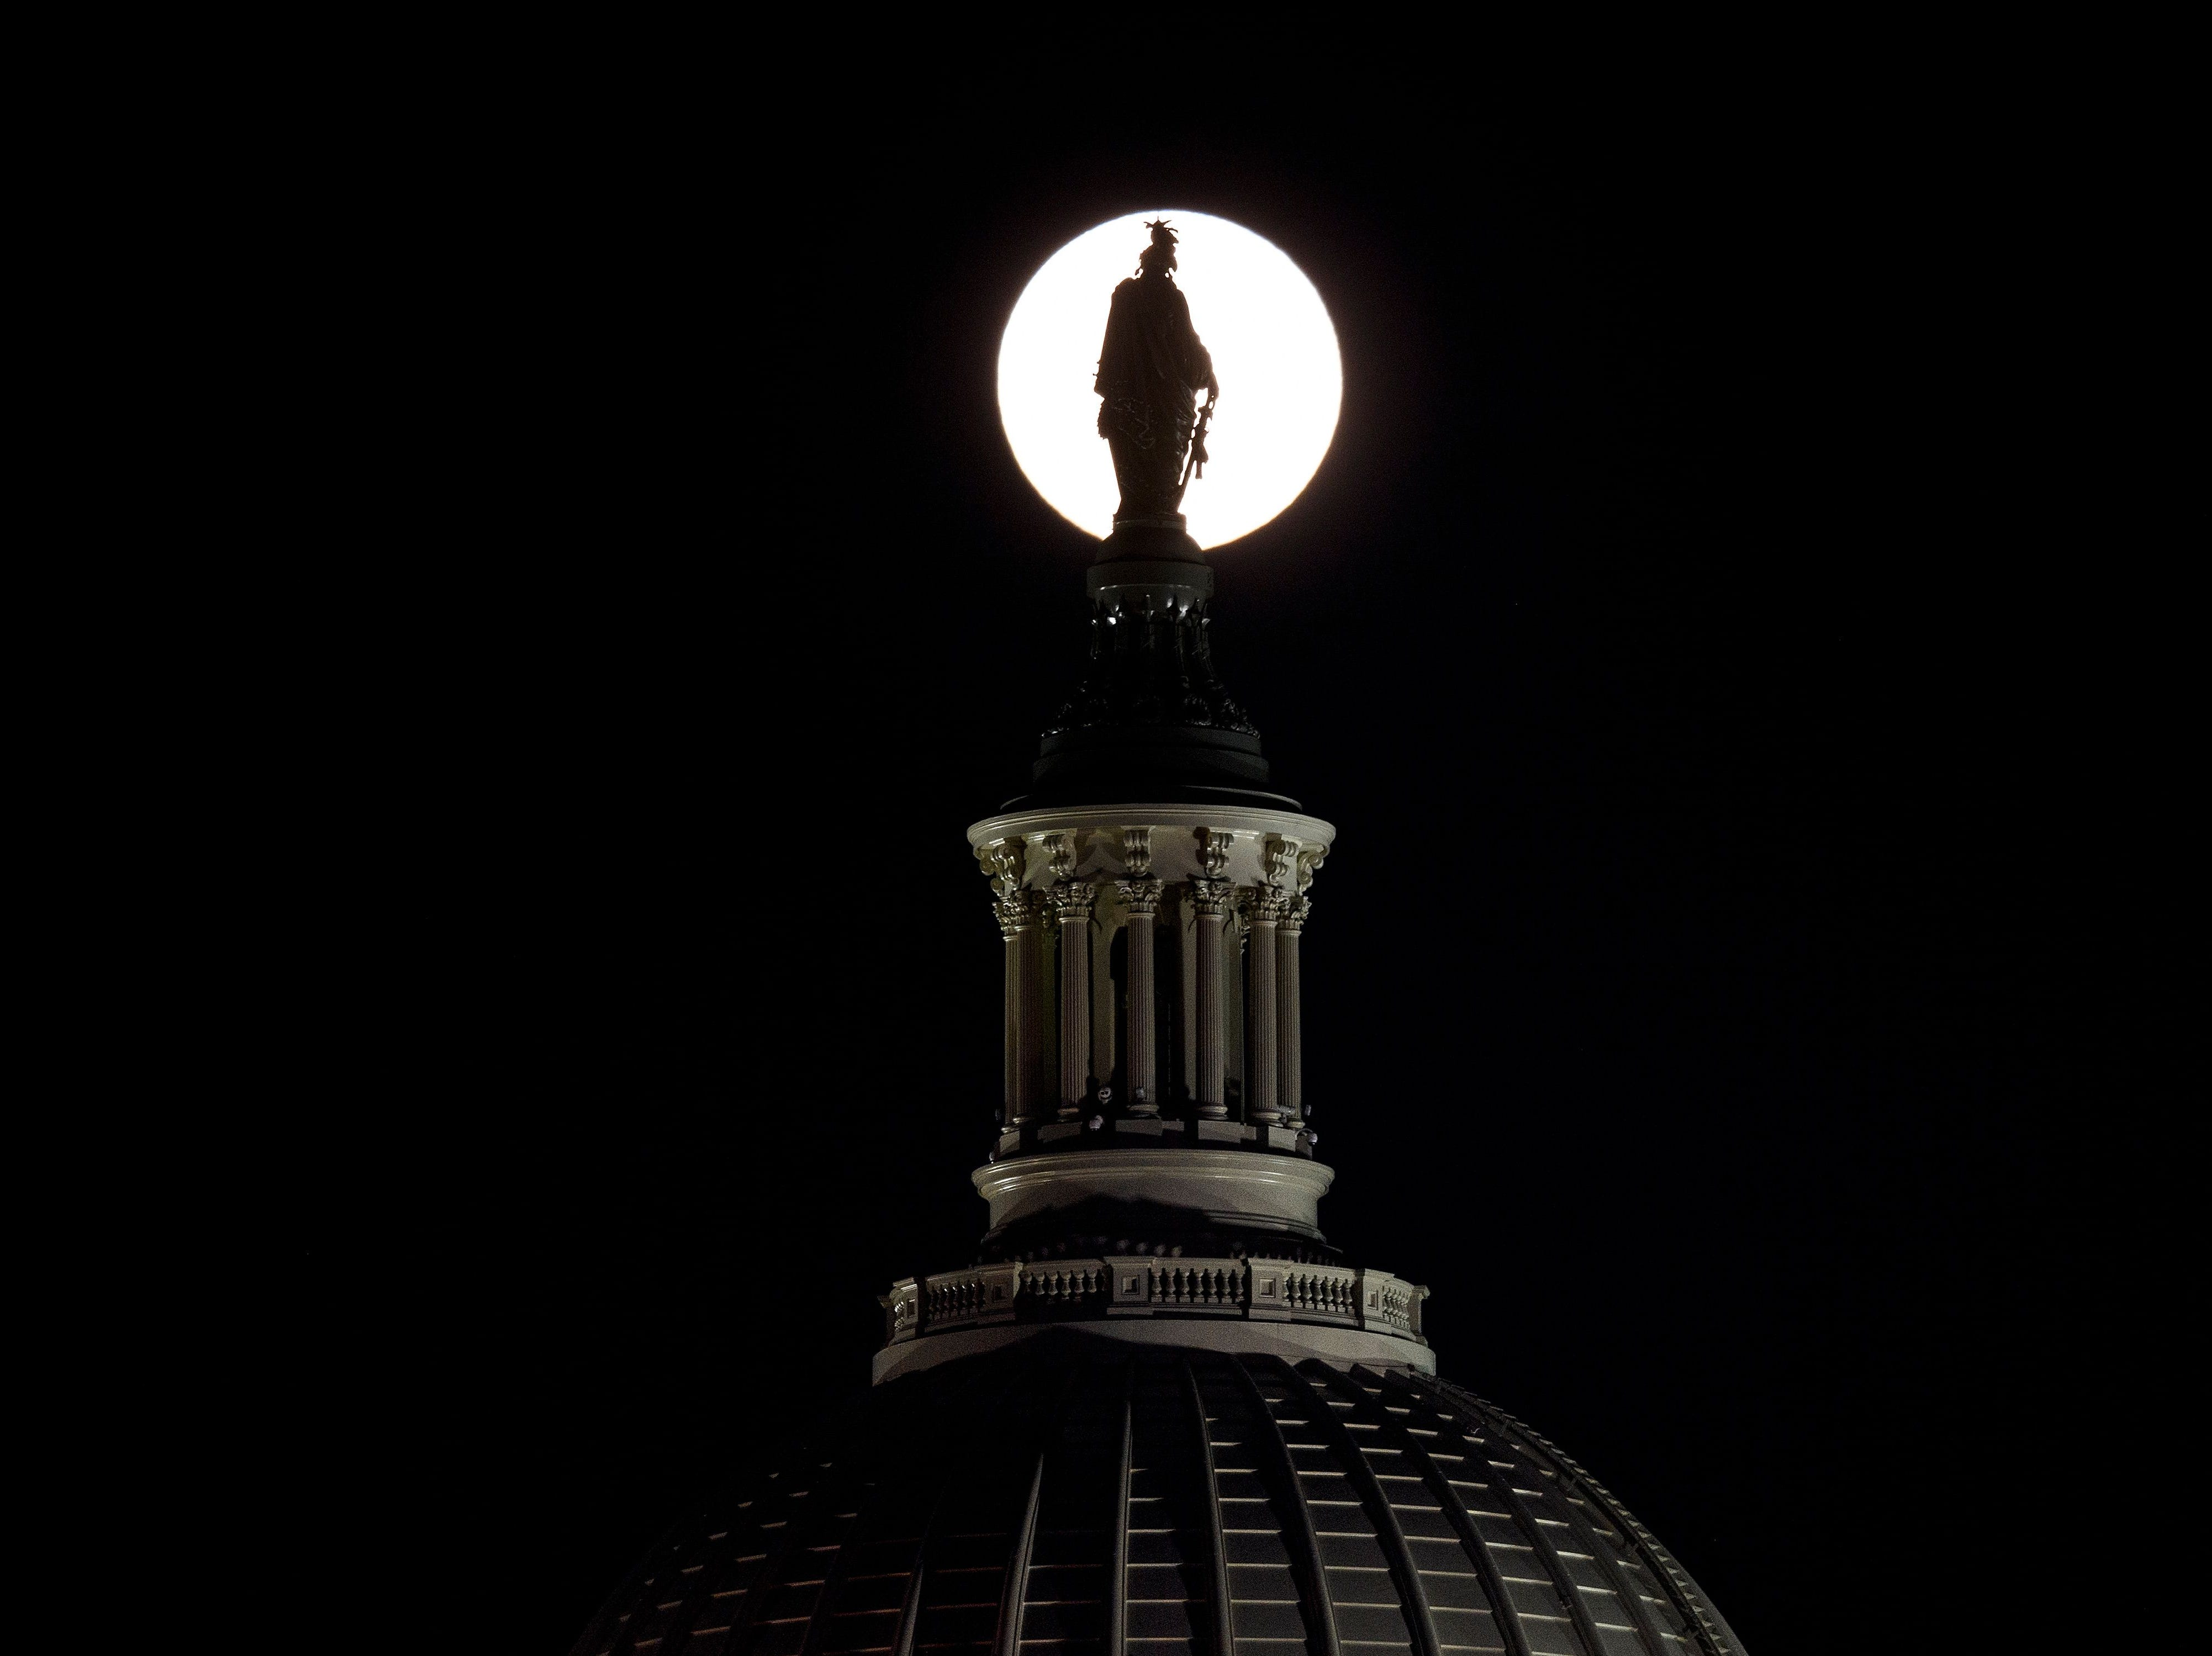 The Statue of Freedom on top of the US Capitol dome is seen silhouetted against the super moon on January 20, 2019 in Washington, DC. (Photo by Brendan Smialowski / AFP)BRENDAN SMIALOWSKI/AFP/Getty Images